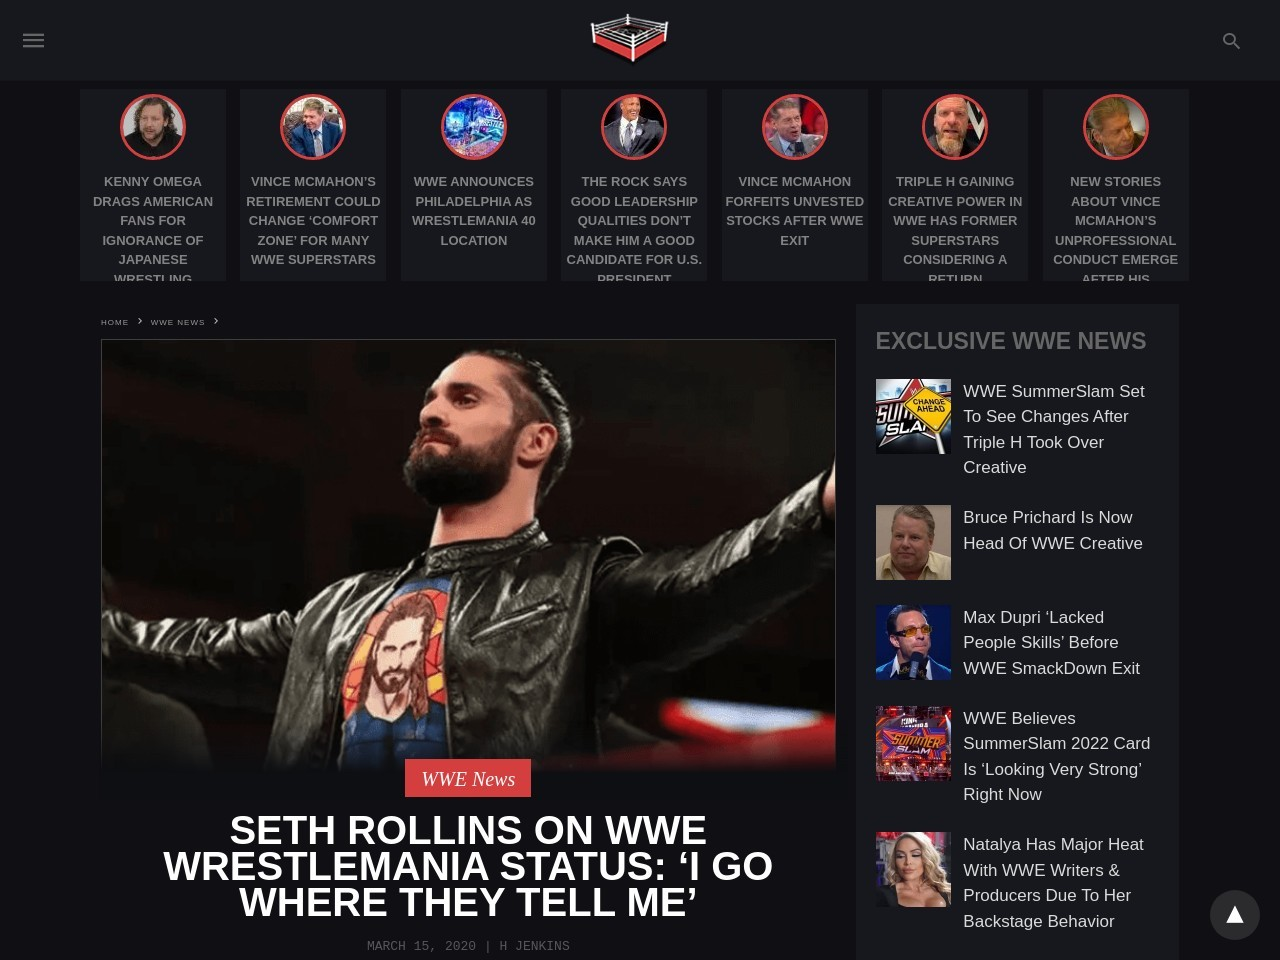 Seth Rollins On WWE WrestleMania Status: 'I Go Where They Tell Me'